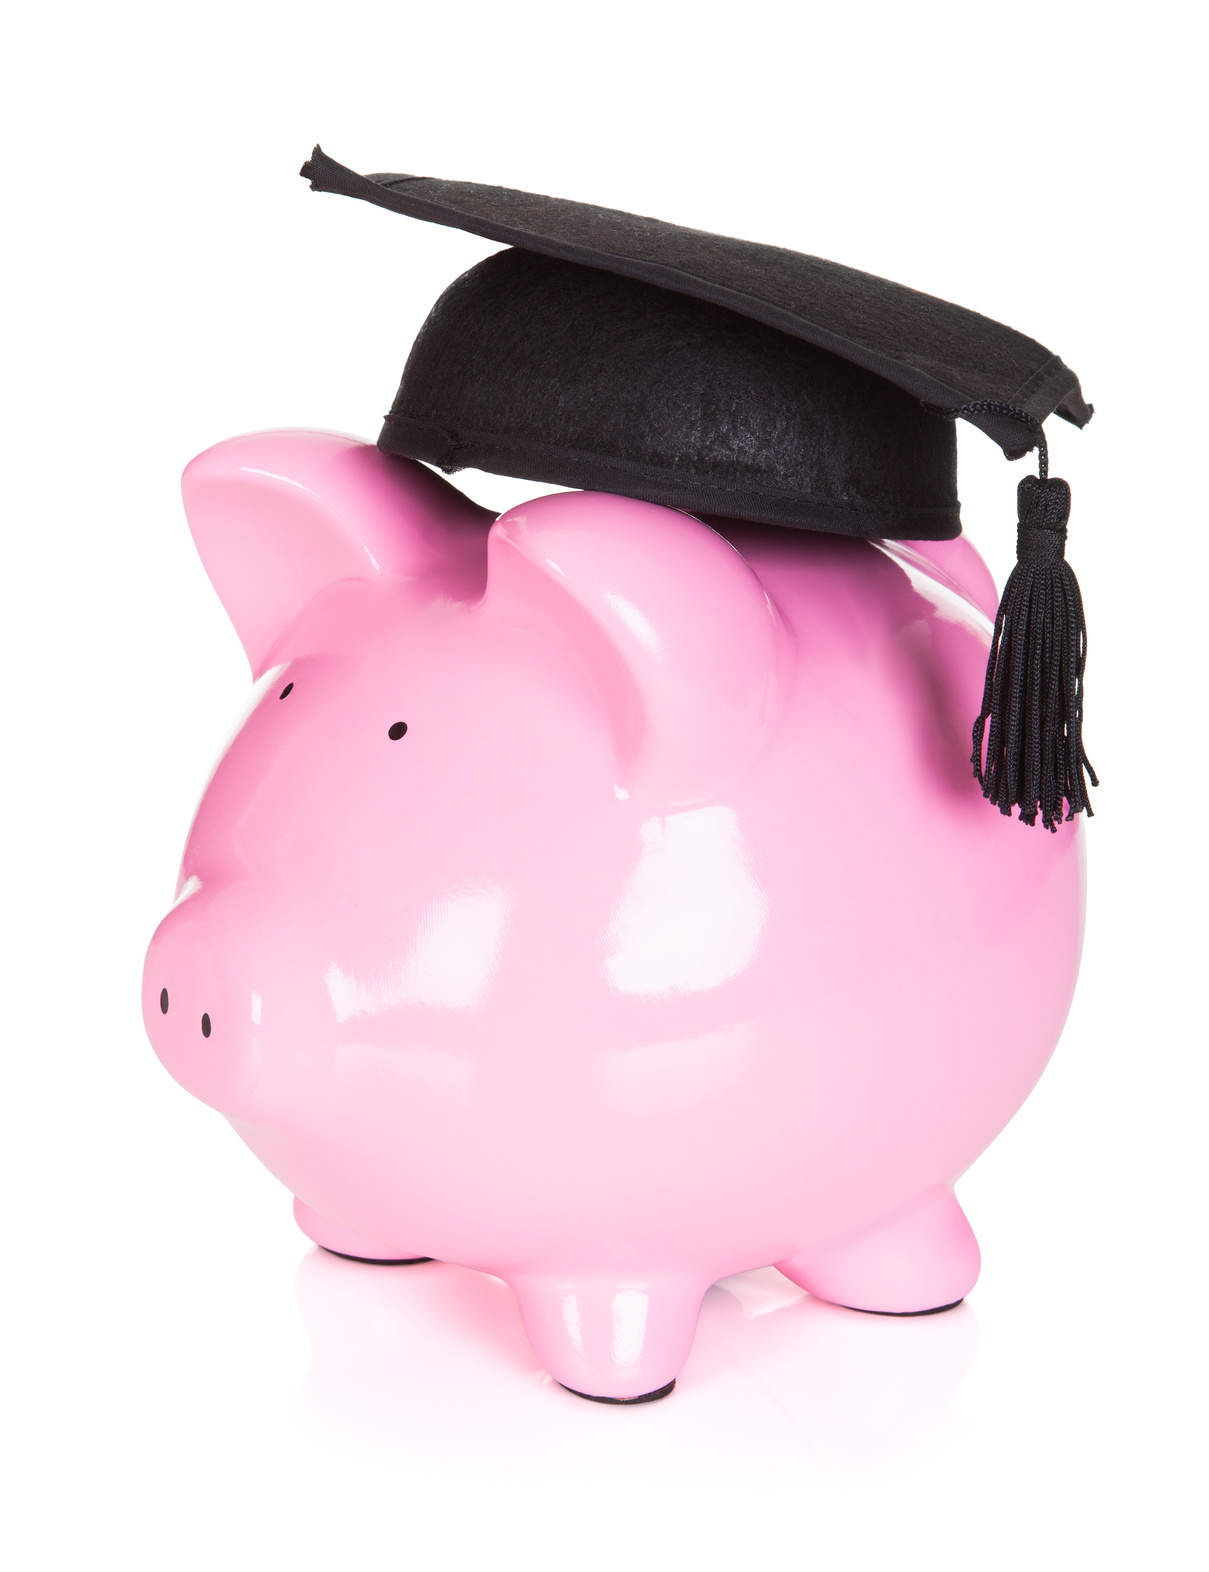 Financial Aid Guide for Families